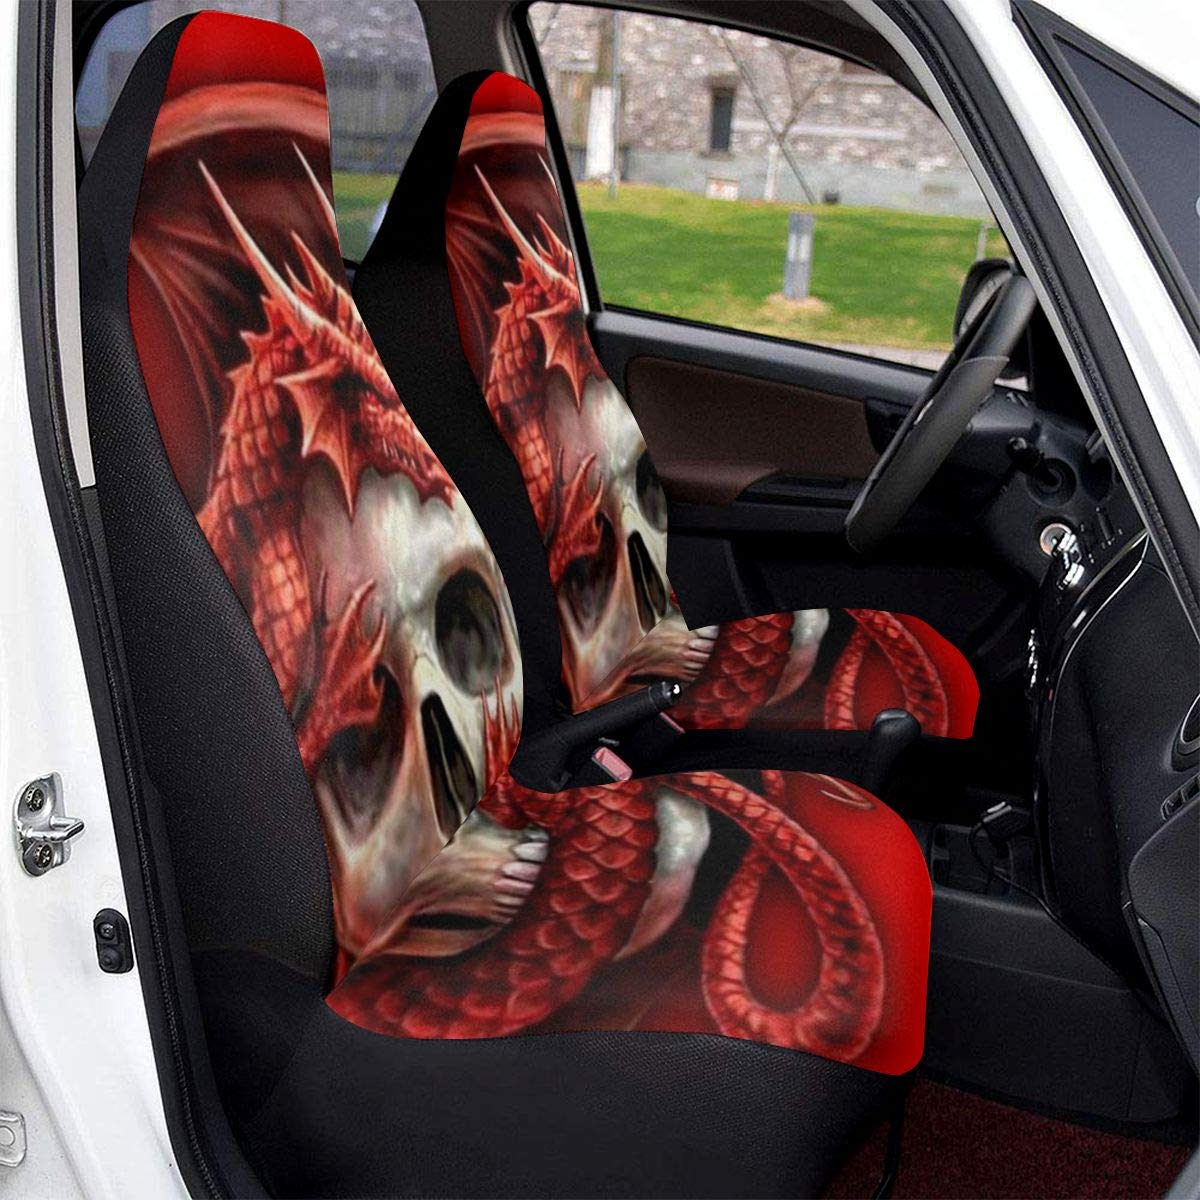 SUV Cars Sedan Trucks WESthDA Red Dragon And Skull Car Seat Covers Vehicle Seat Protector Car Mat Covers Fit Most Vehicle